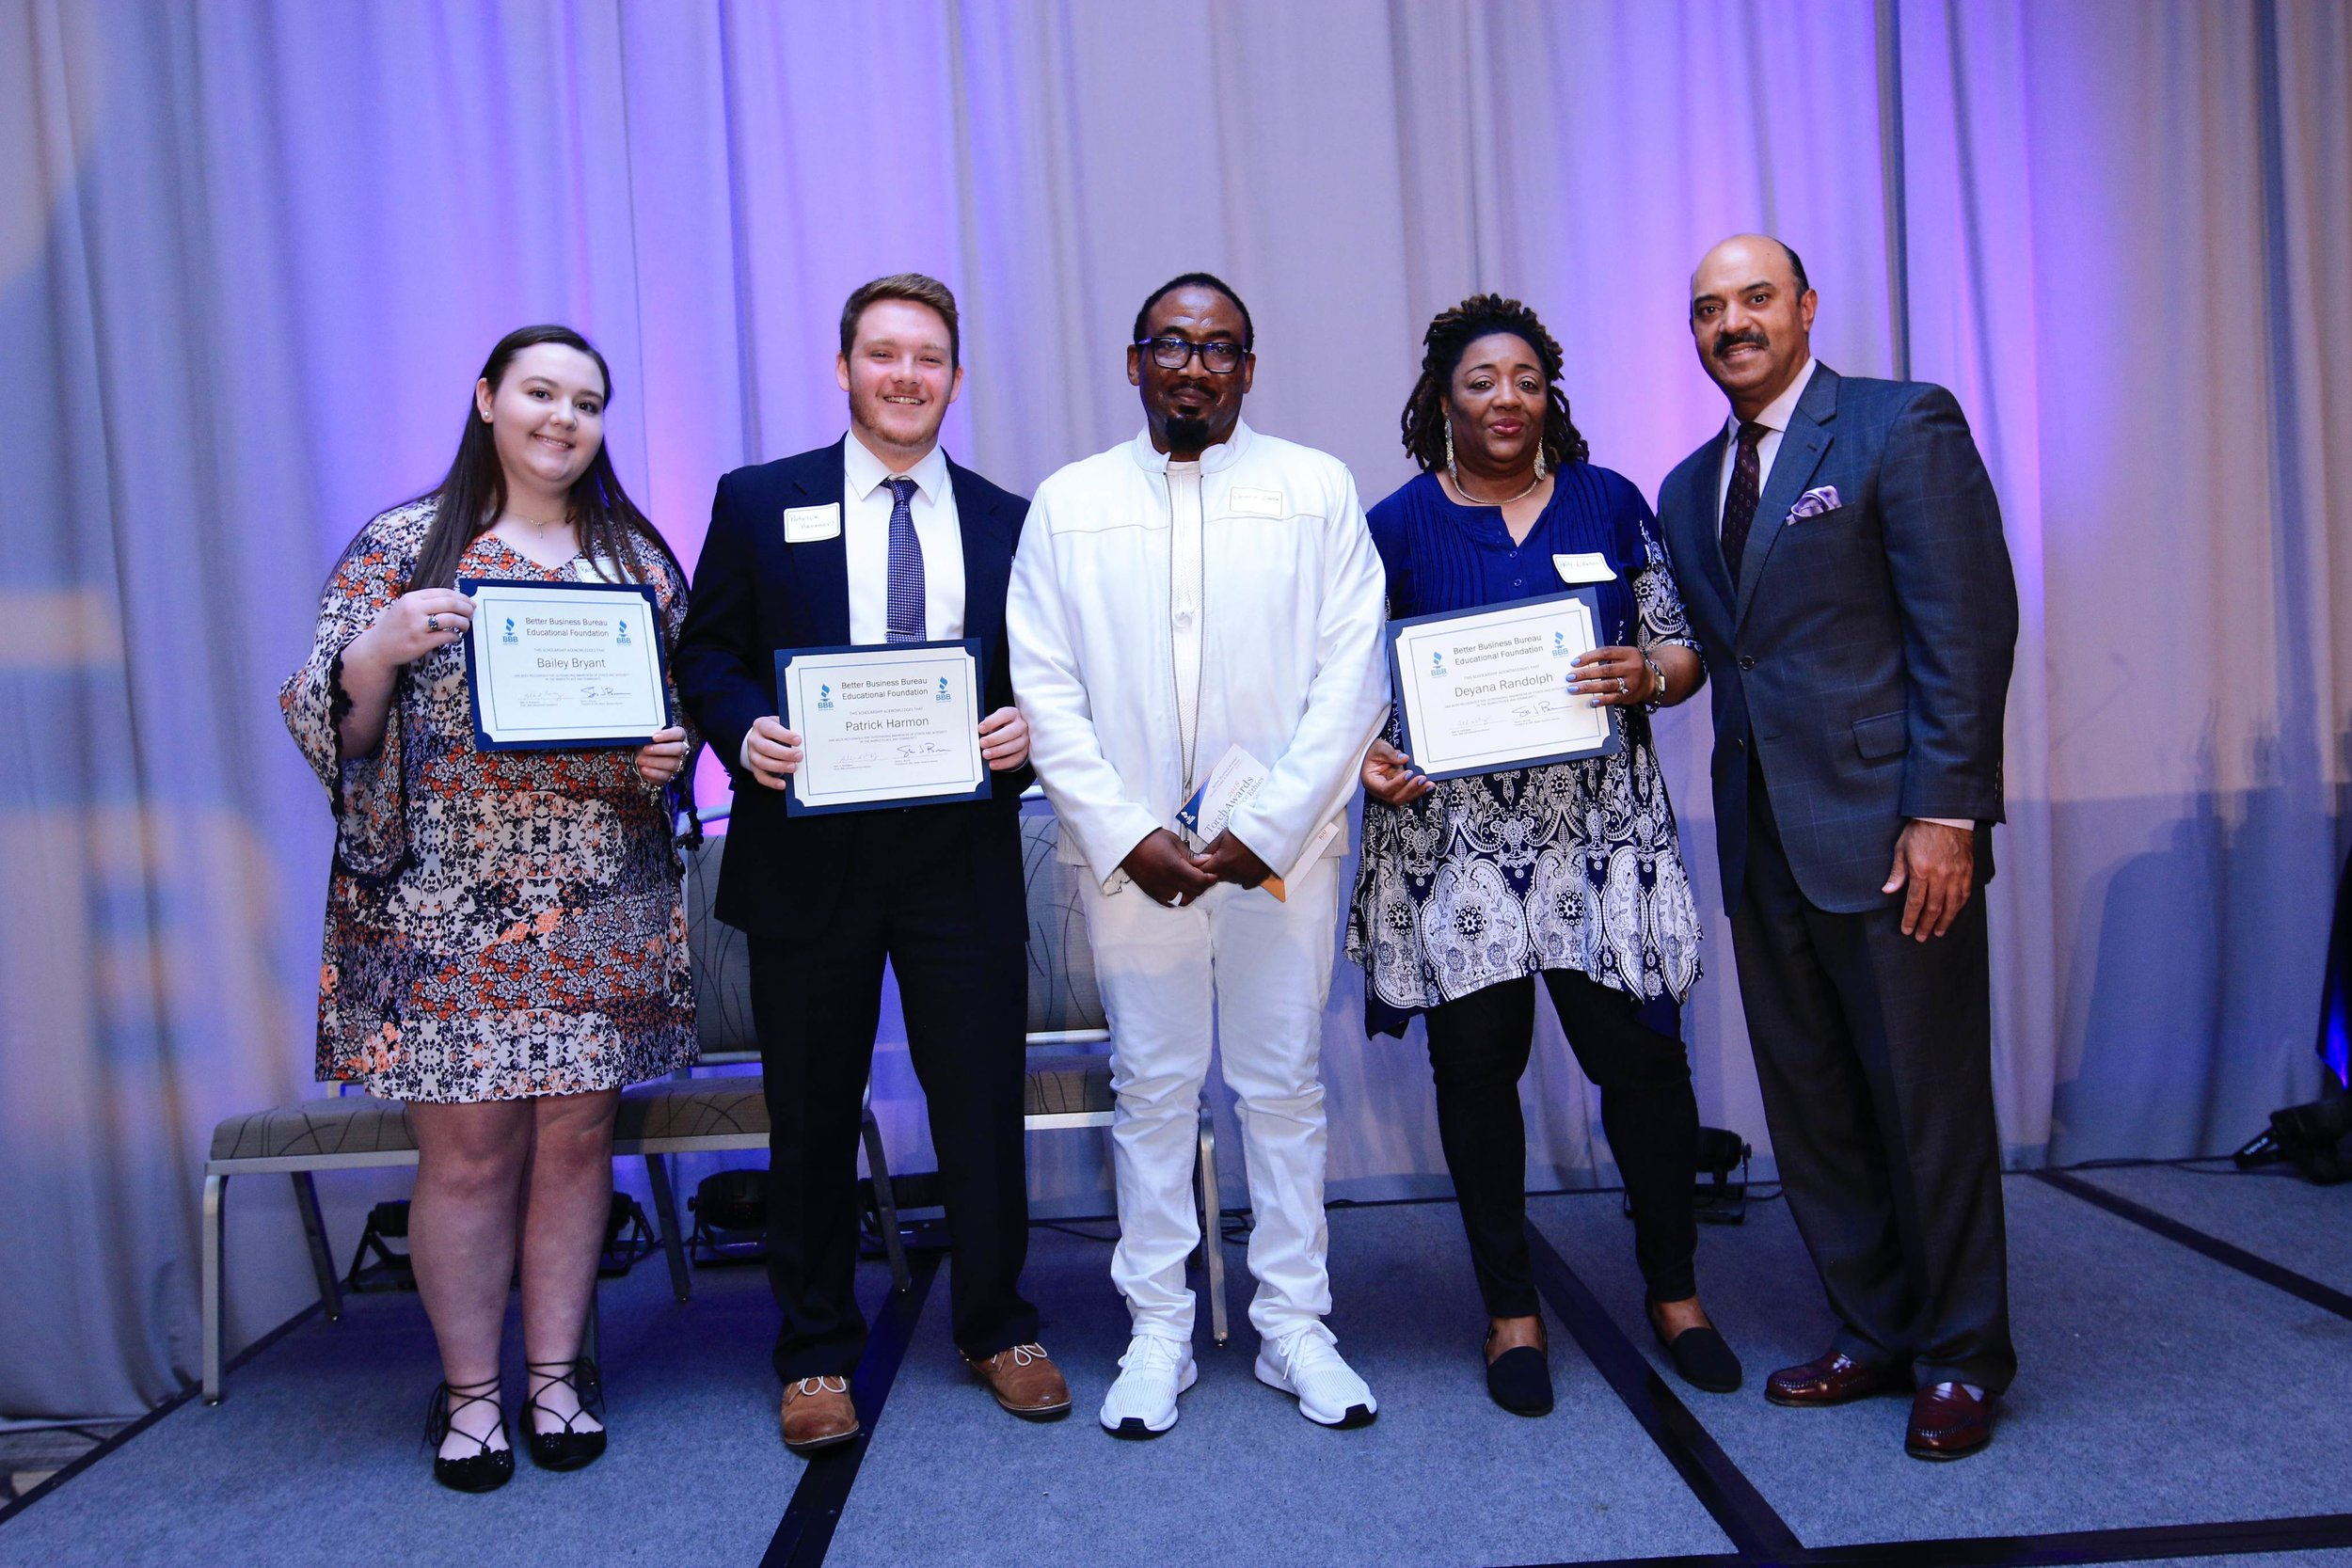 Scholarships - The Foundation hosts an annual scholarship program, providing deserving students with thousands of dollars each year to pursue their higher education.